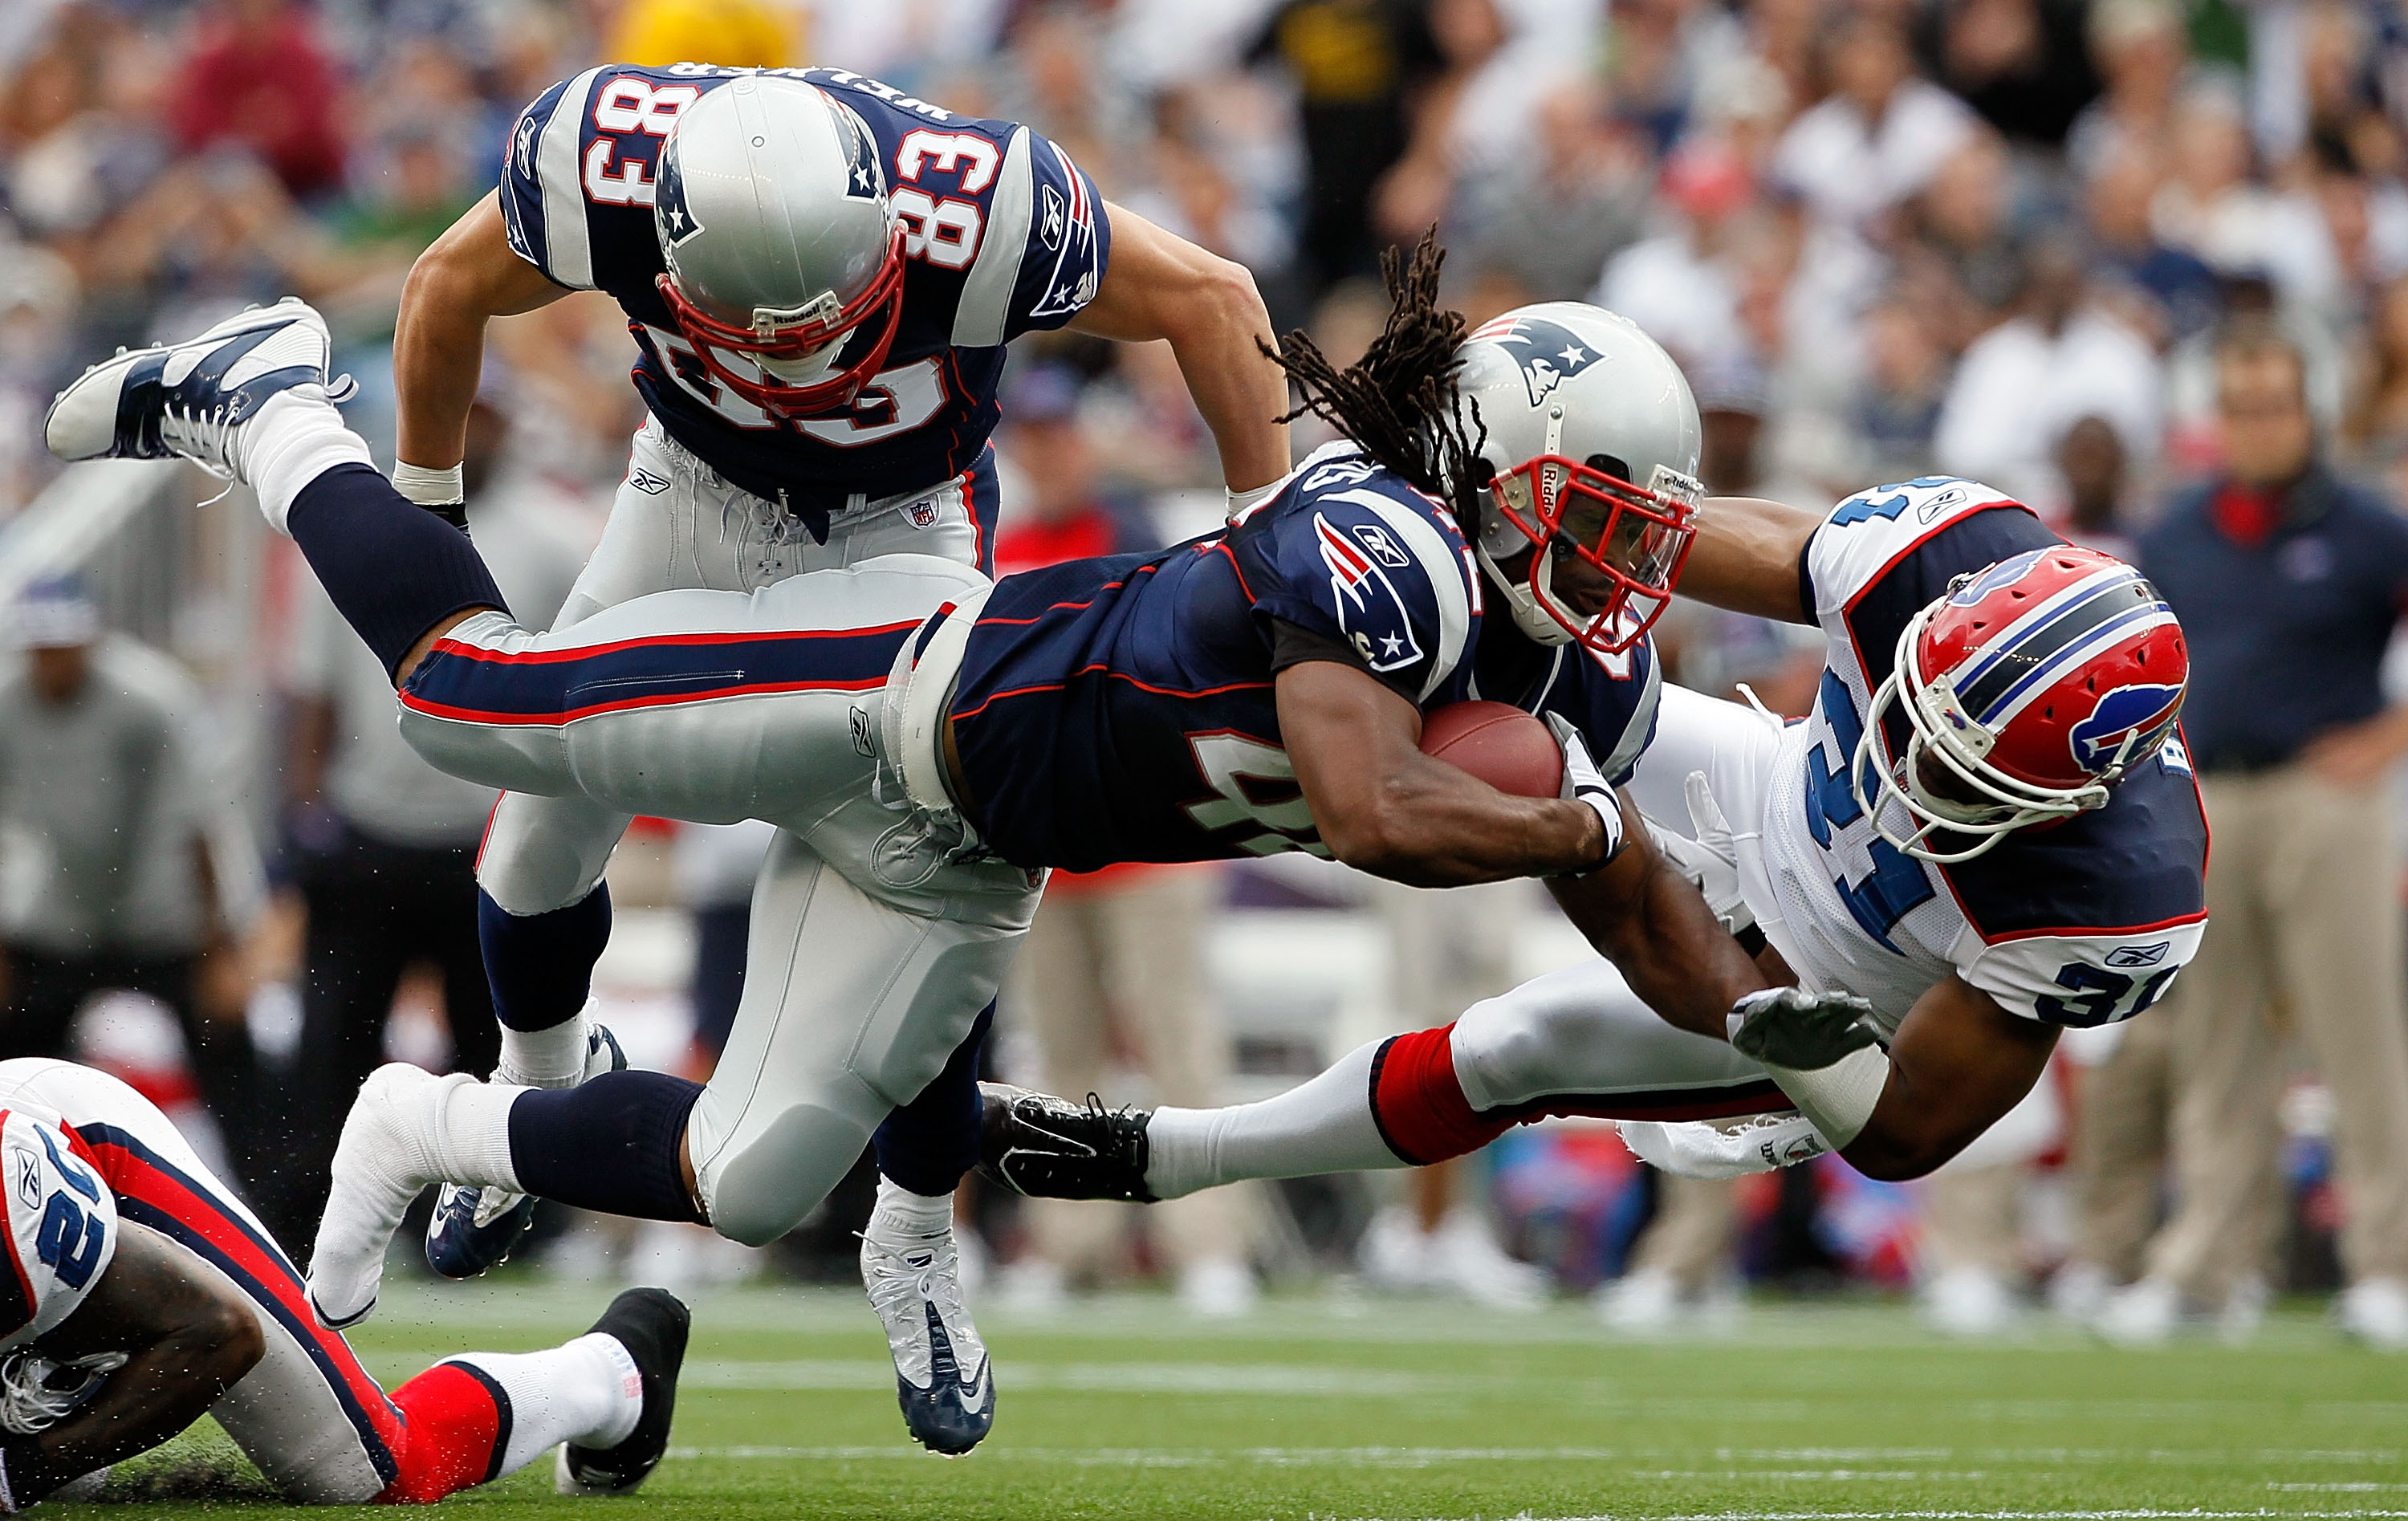 FOXBORO, MA - SEPTEMBER 26:  BenJarvus Green-Ellis #42 of the New England Patriots gains yardage against the defense of Jairus Byrd #31 of the Buffalo Bills at Gillette Stadium on September 26, 2010 in Foxboro, Massachusetts. (Photo by Jim Rogash/Getty Im